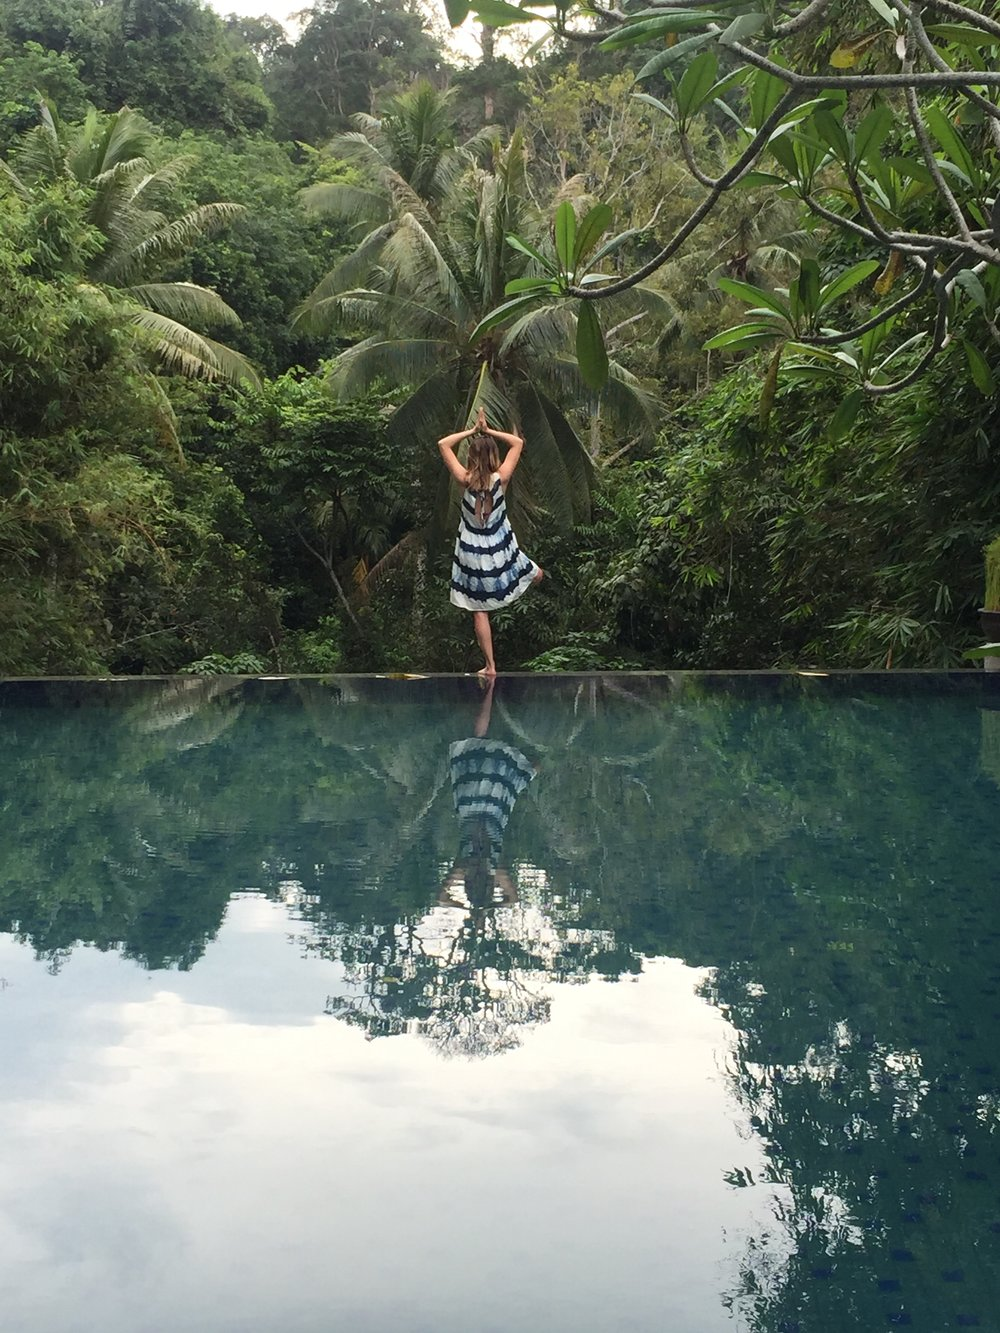 Meditation time. Balance yourself & breathe in that jungle view